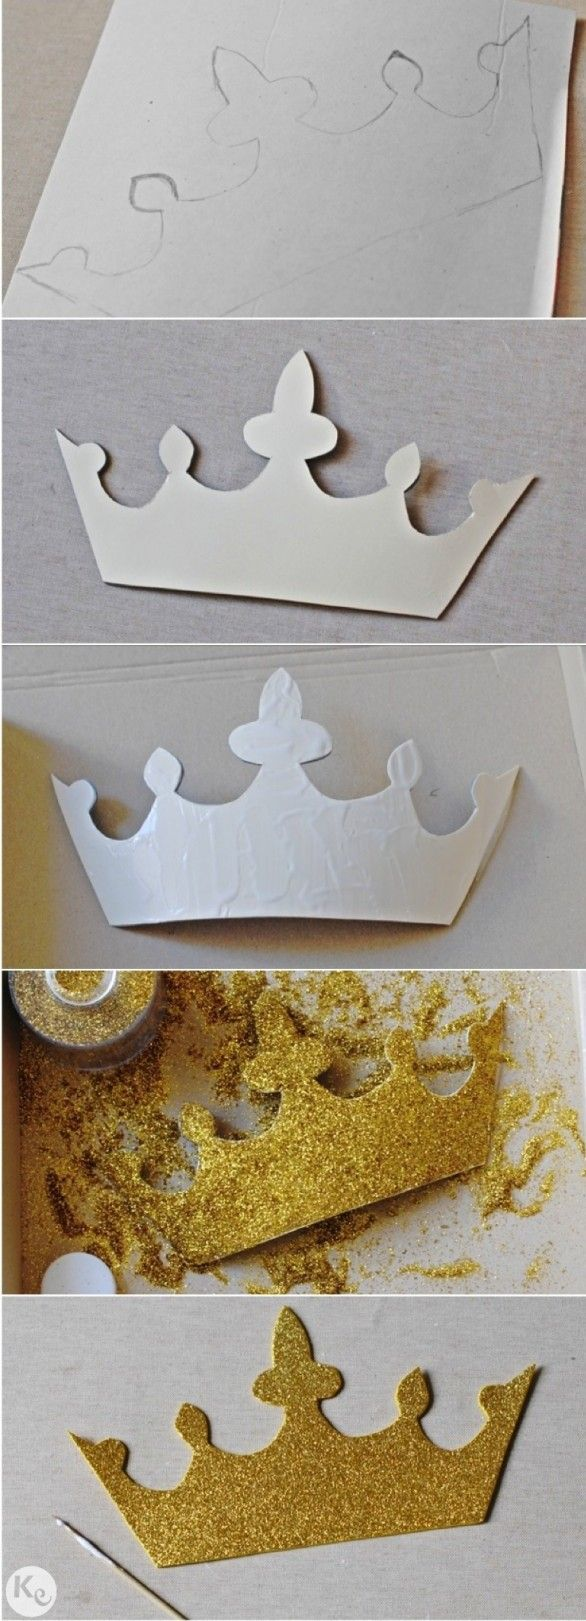 DIY. Photobooth props-Crown-Instructions  @Caroline MB  on va en faire du bricolage toi et moi! :P